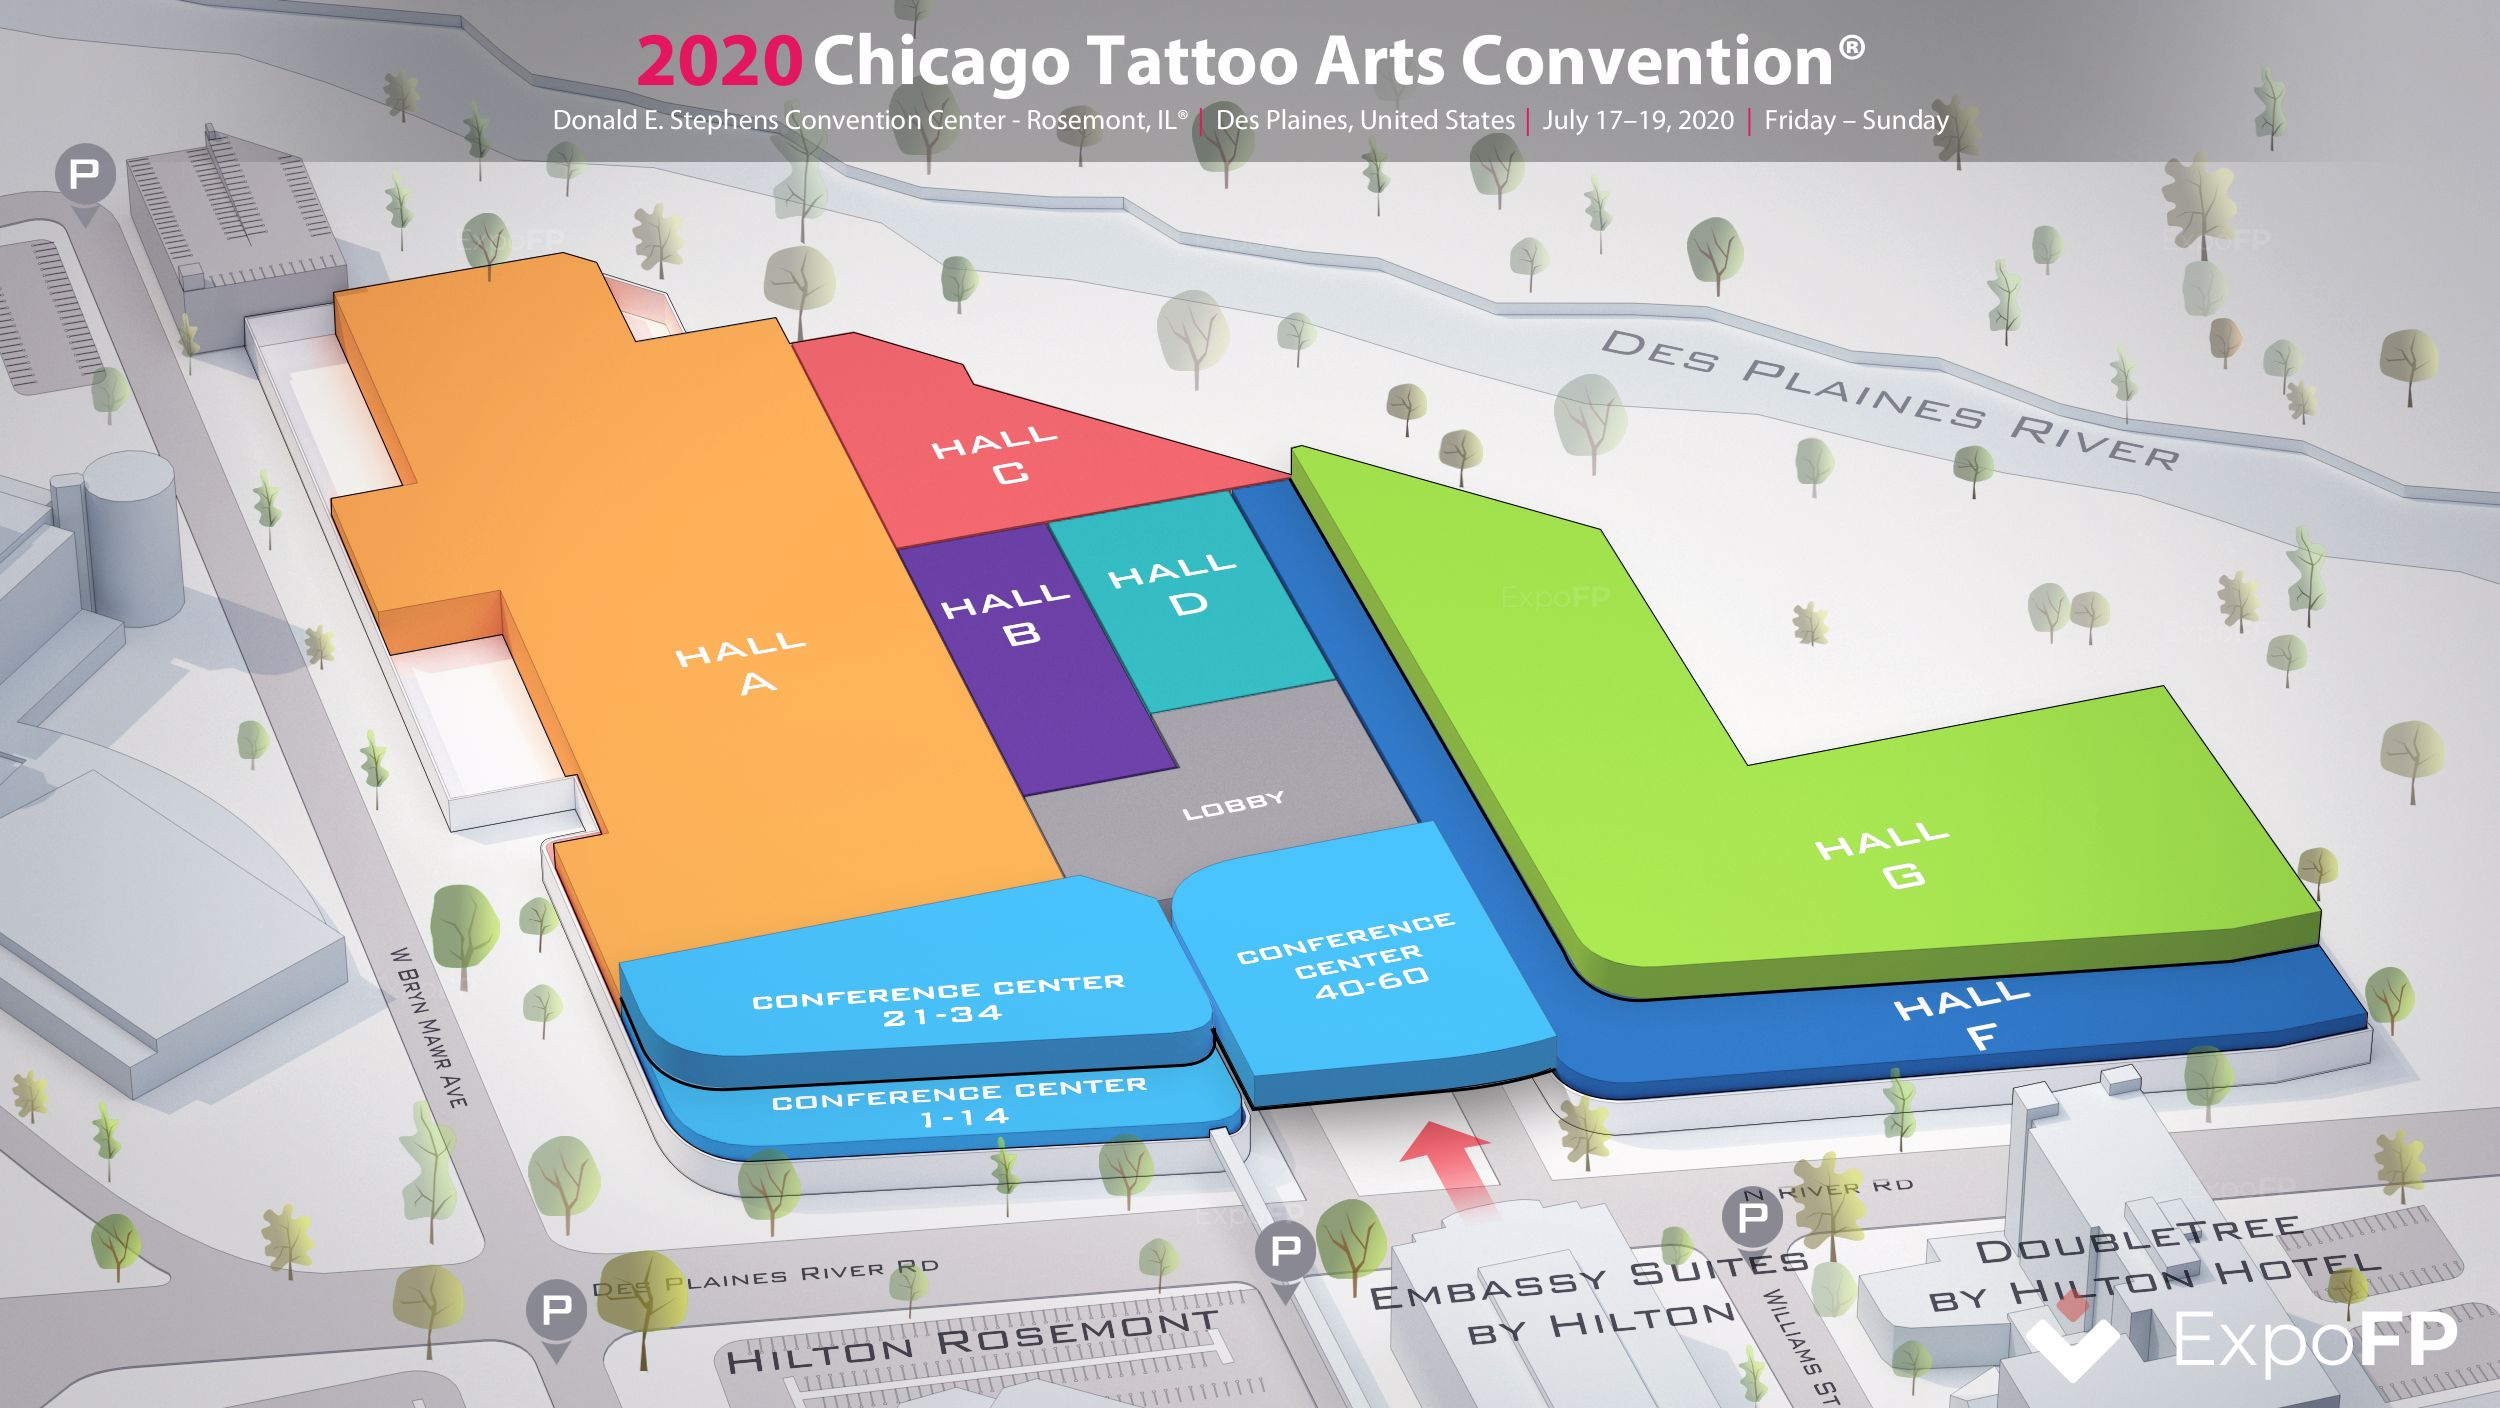 Chicago Tattoo Orlando Halloween 2020 Chicago Tattoo Arts Convention 2020 in Donald E. Stephens